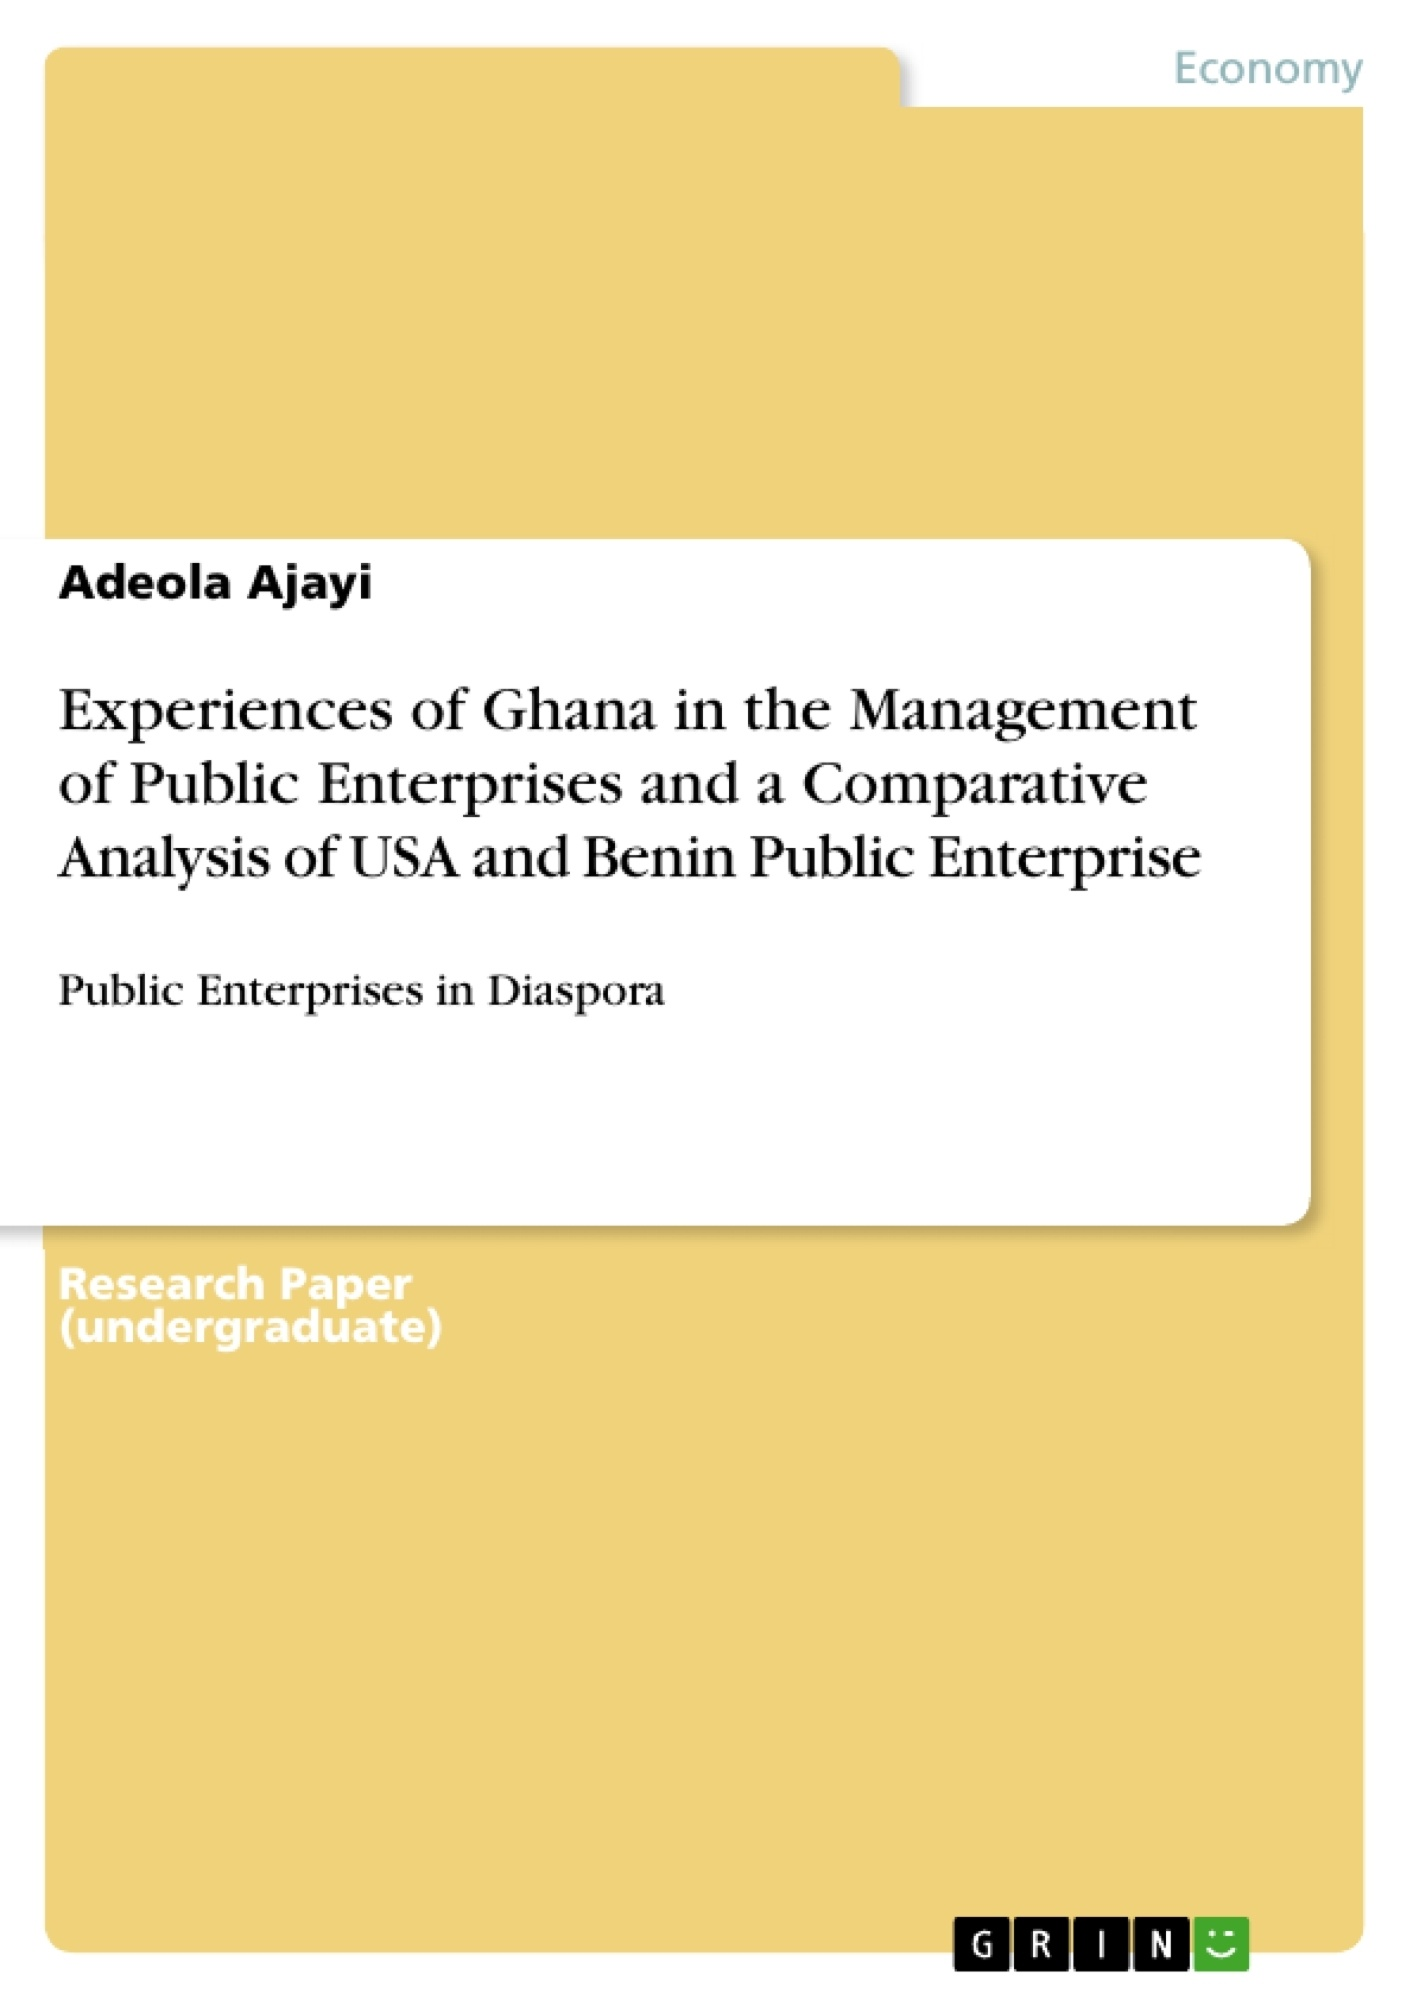 Title: Experiences of Ghana in the Management of Public Enterprises and a Comparative Analysis of USA and Benin Public Enterprise